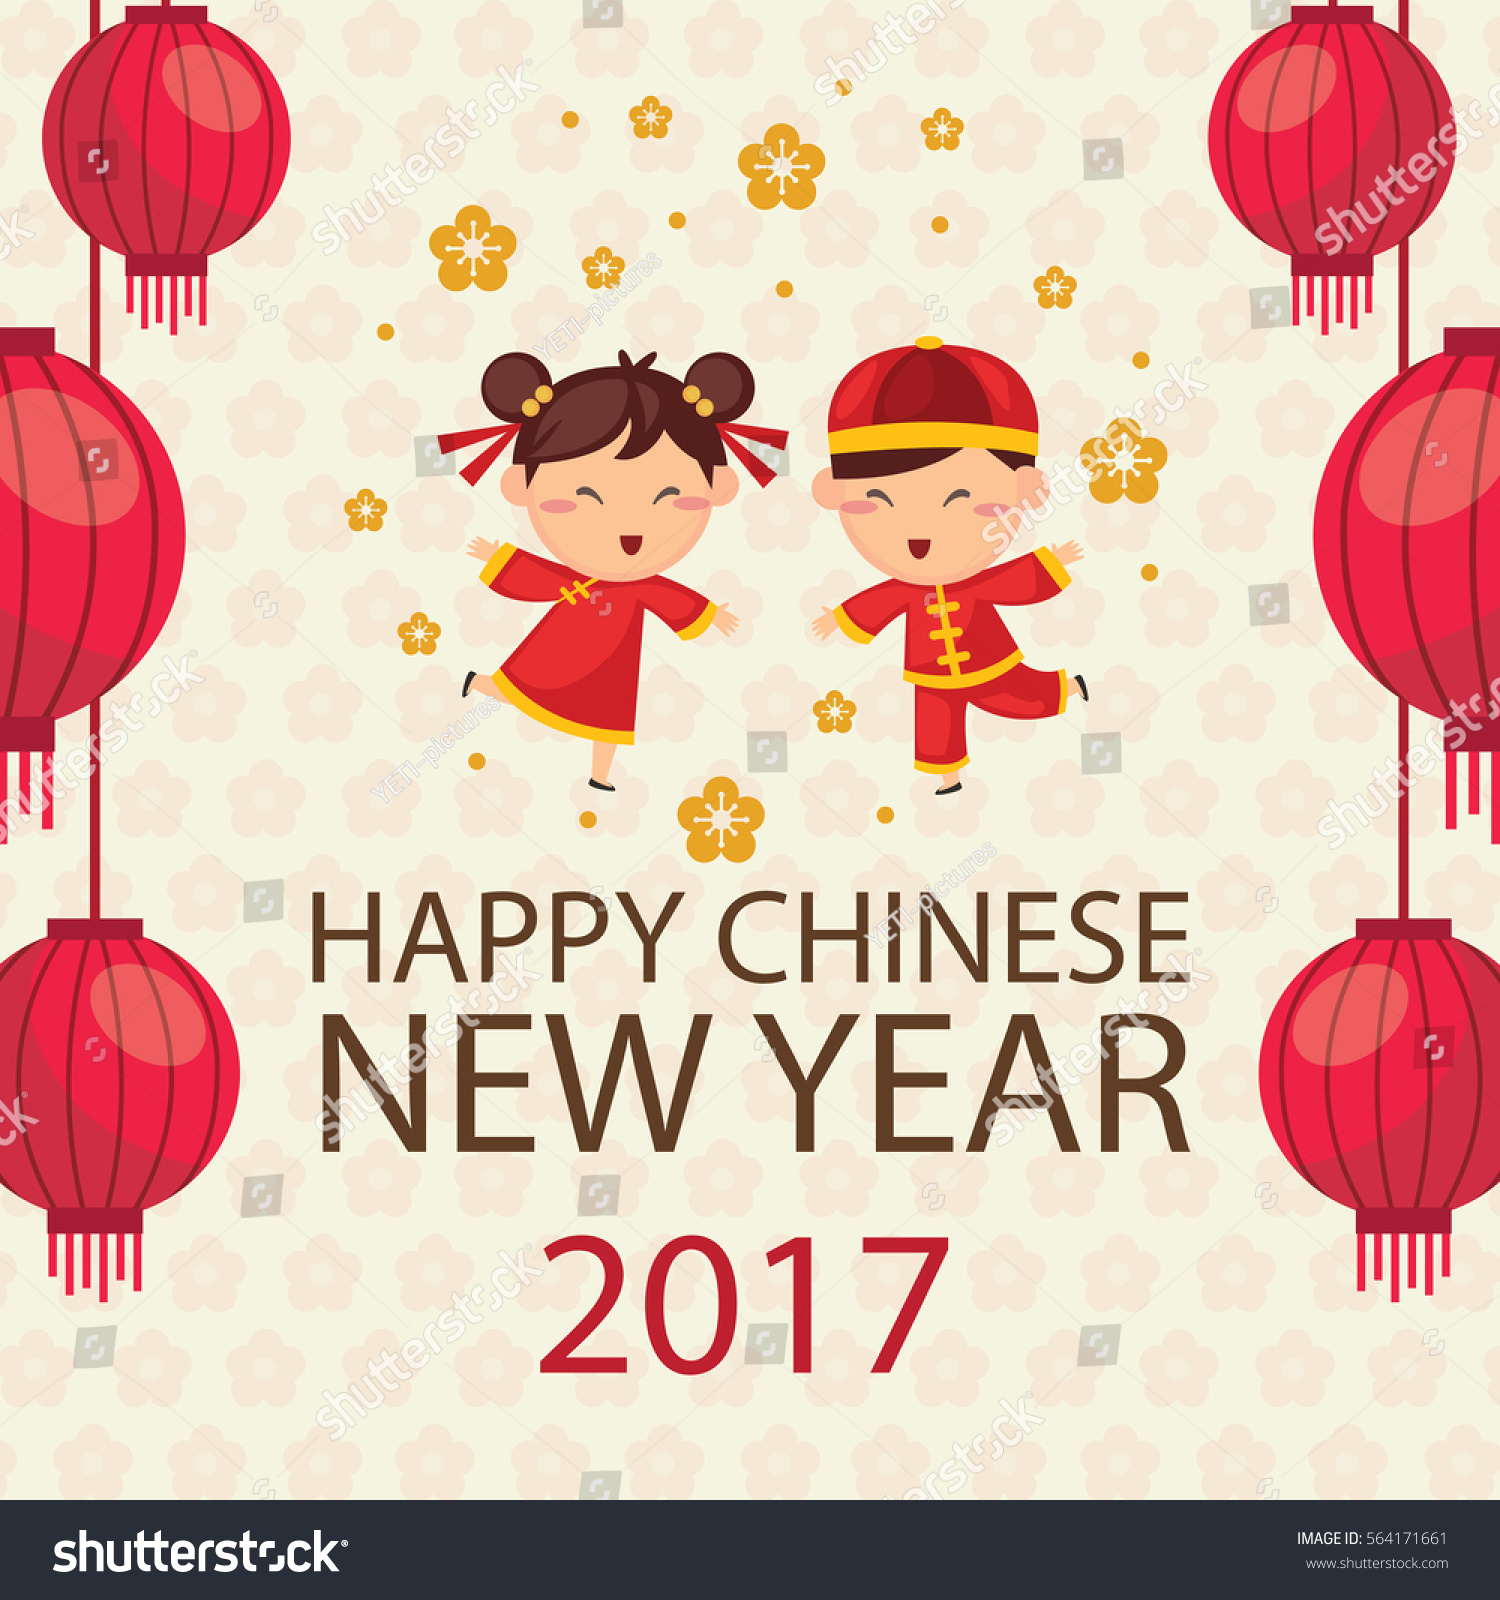 Happy New Year 2017 Wishes: Happy Chinese New Year 2017 Greeting Stock Vector 564171661